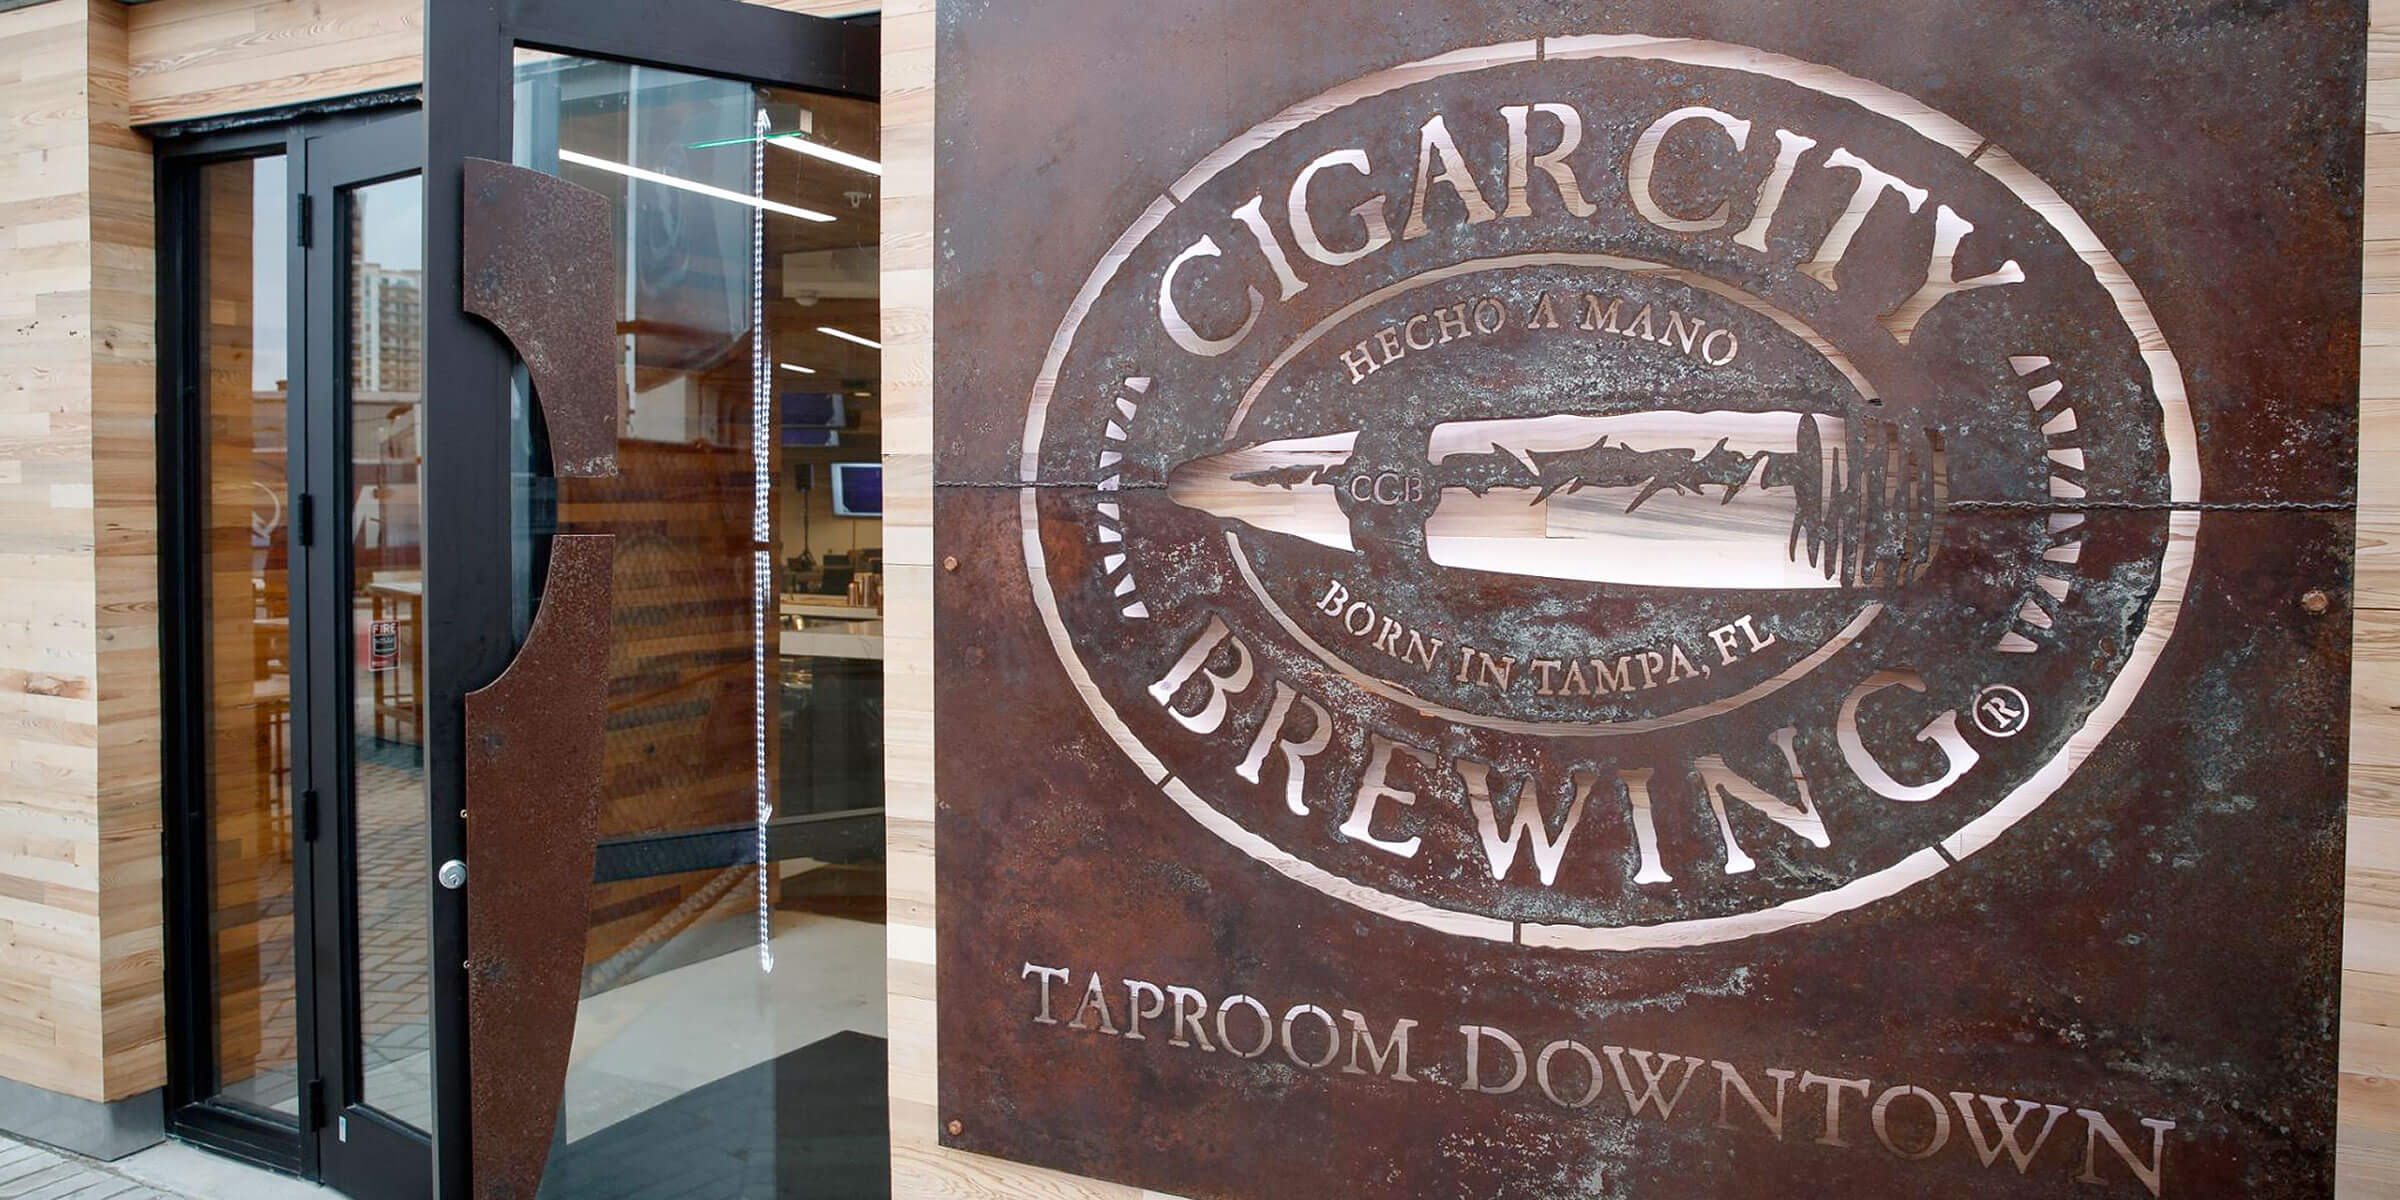 Outside the entrance to the new Cigar City Brewing taproom at the AMALIE arena in Tampa, Florida